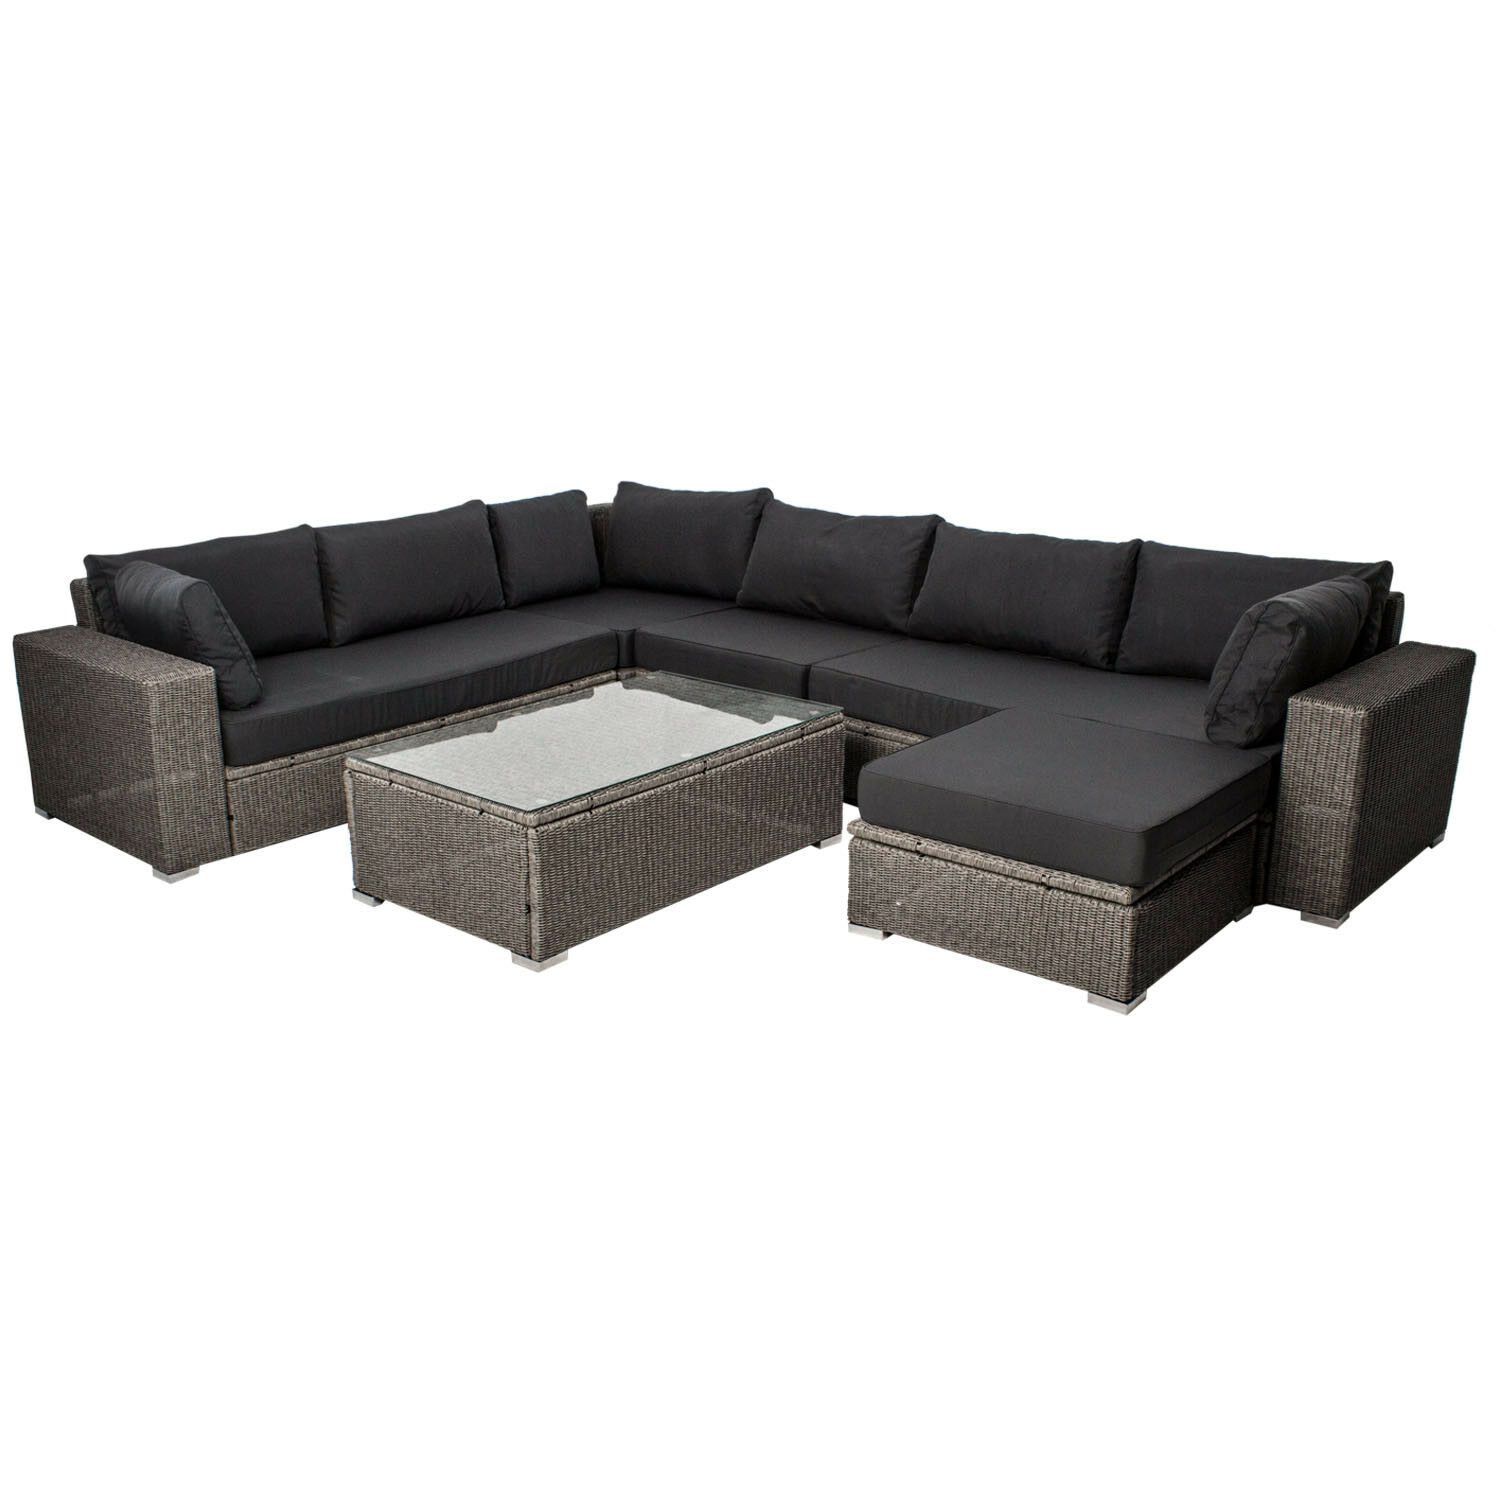 polyrattan gartenm bel lounge sitzgruppe gartenset rattan rattanm bel poly eur 899 95. Black Bedroom Furniture Sets. Home Design Ideas